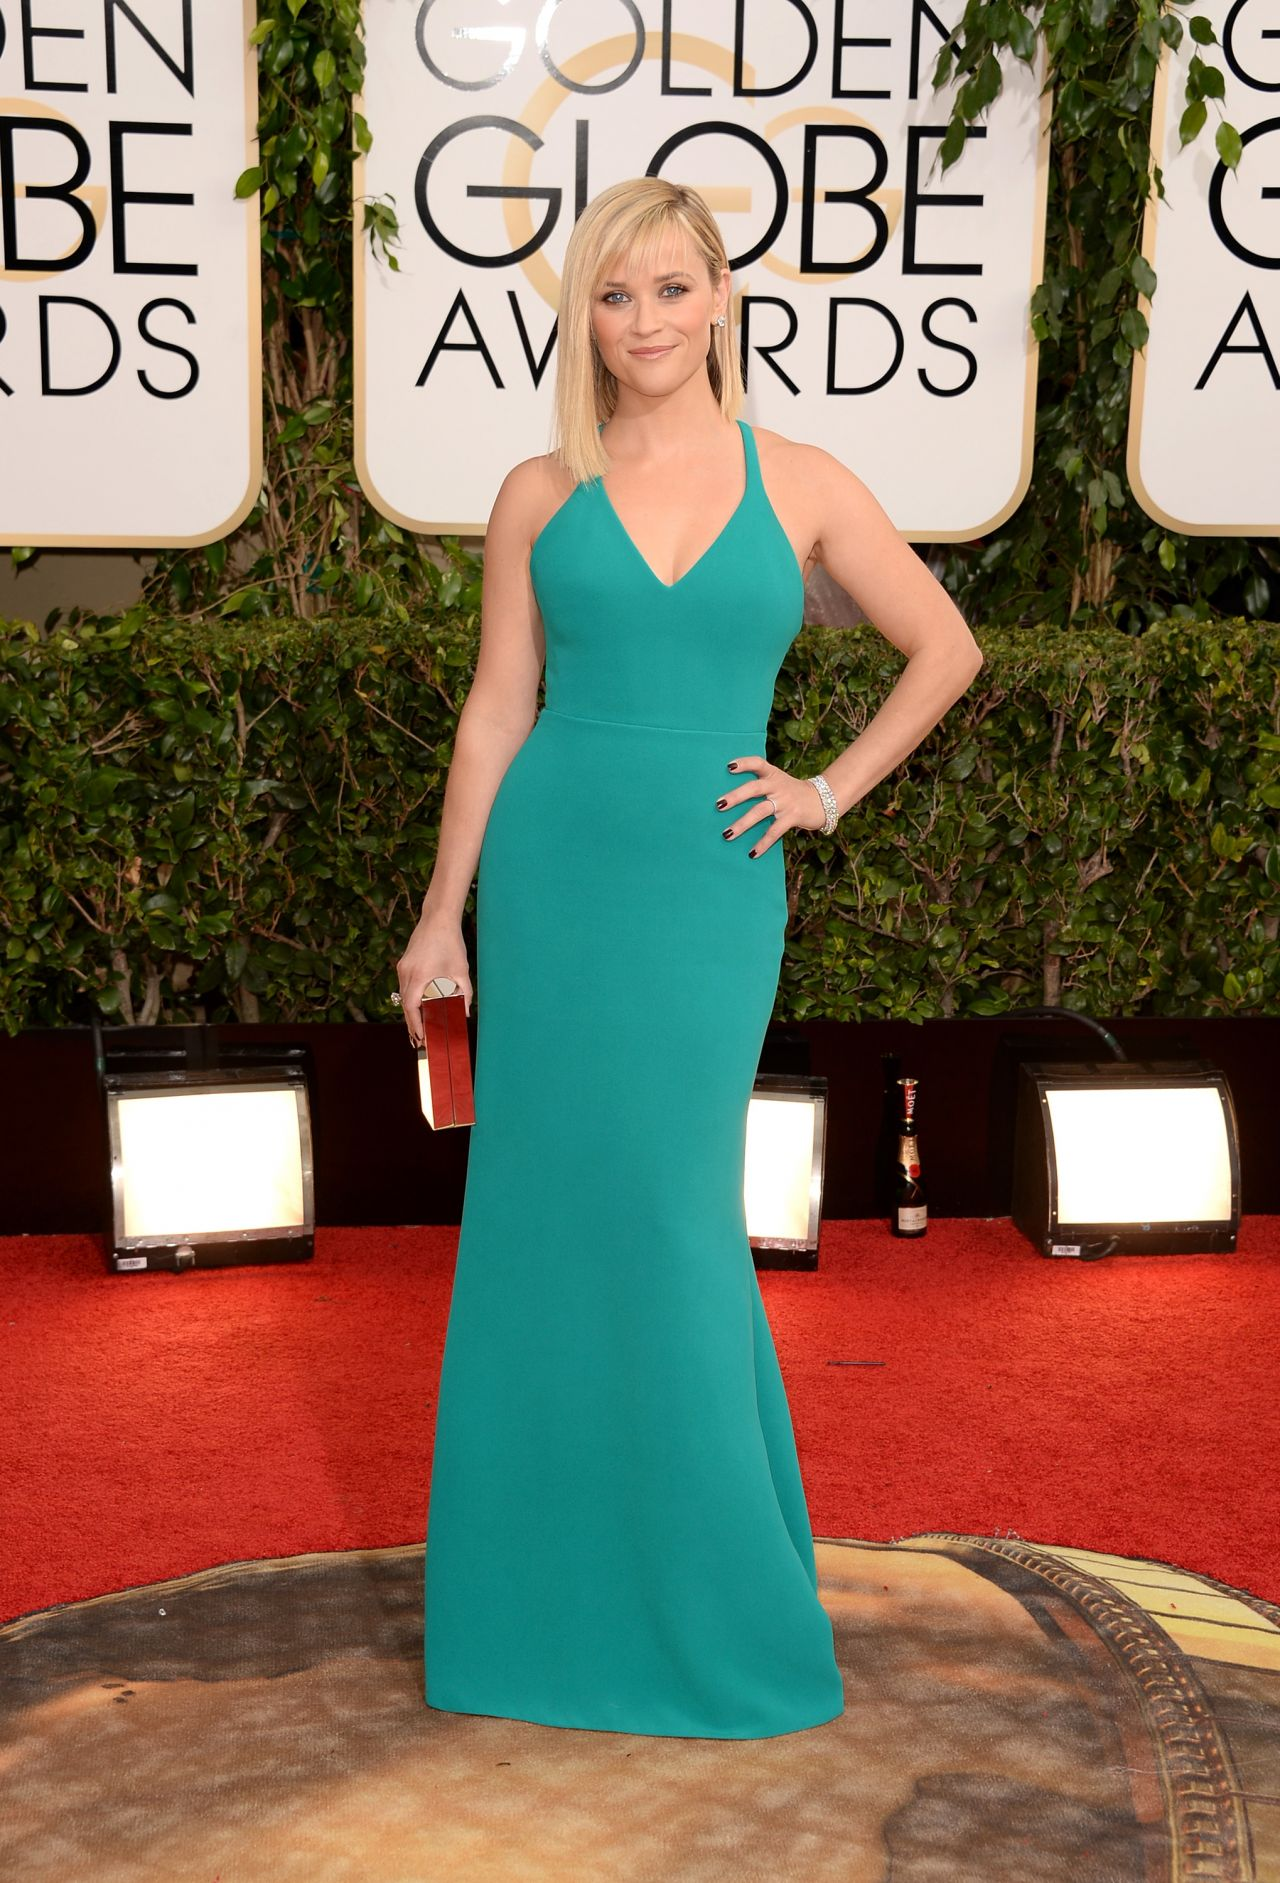 Reese Witherspoon Red Carpet Photos - 71st Annual Golden Globe Awards (2014)